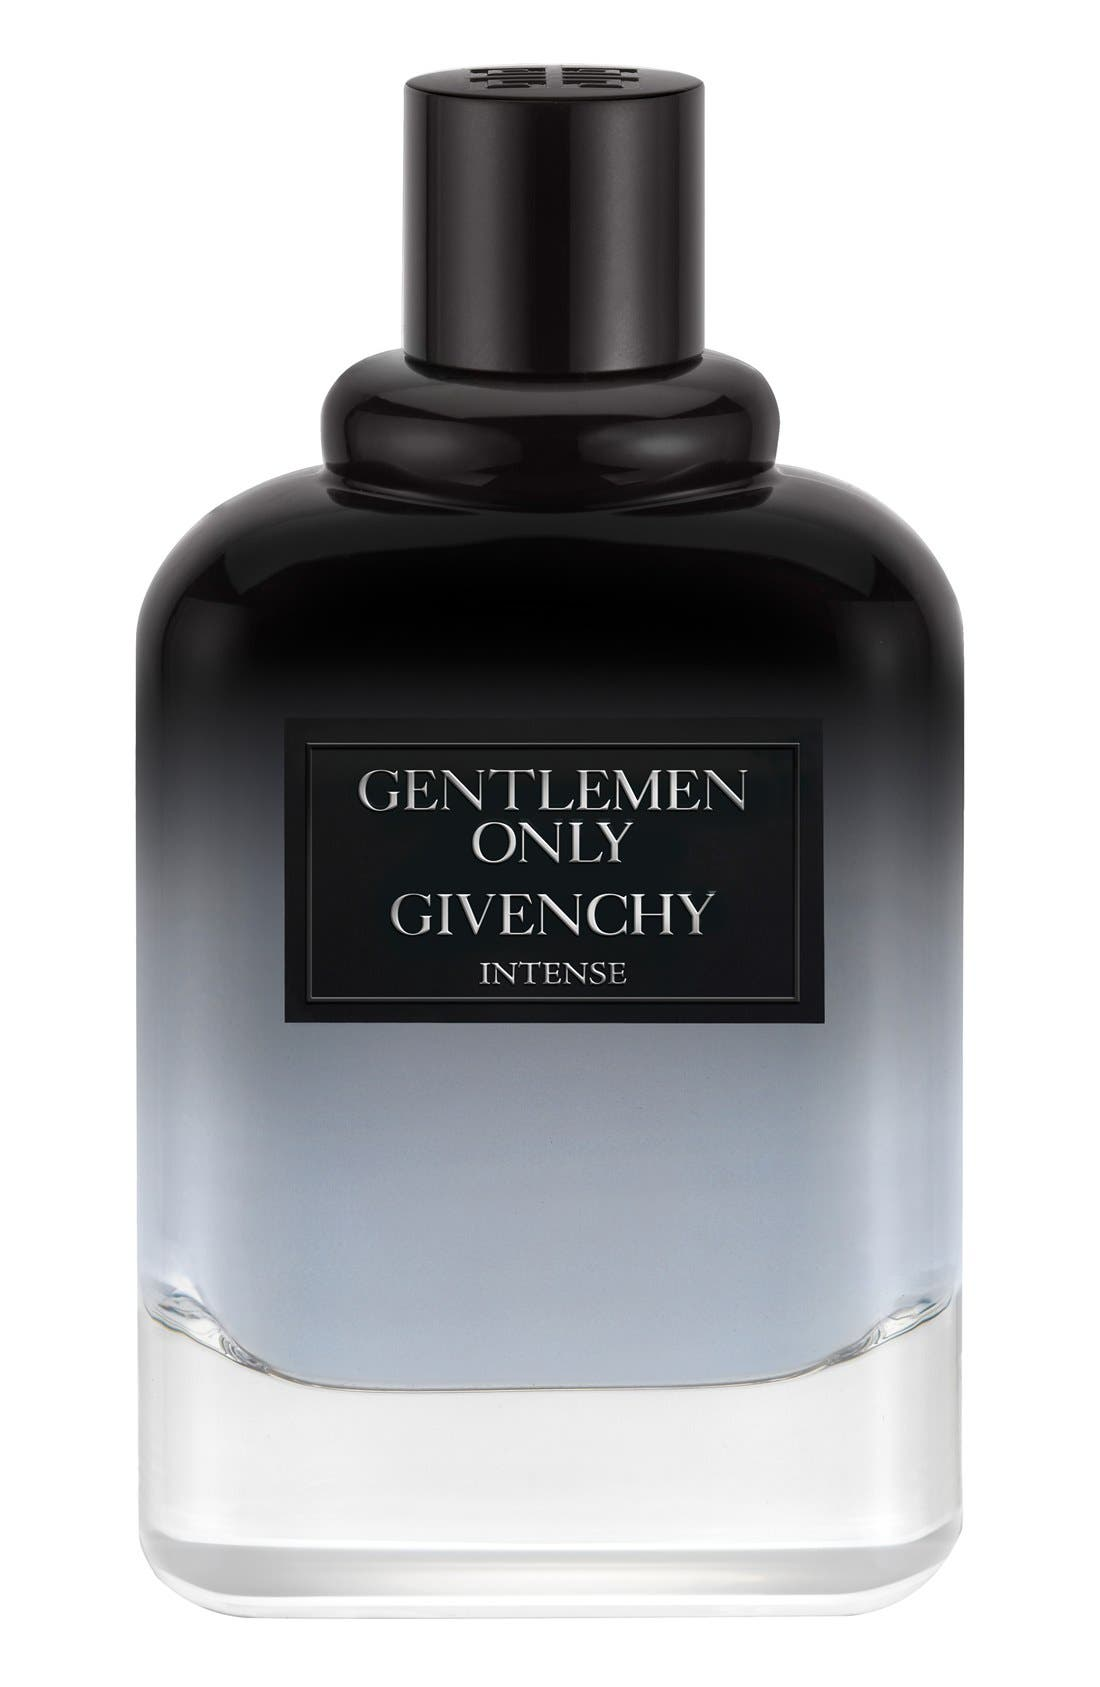 Givenchy 'Gentlemen Only Intense' Eau de Toilette